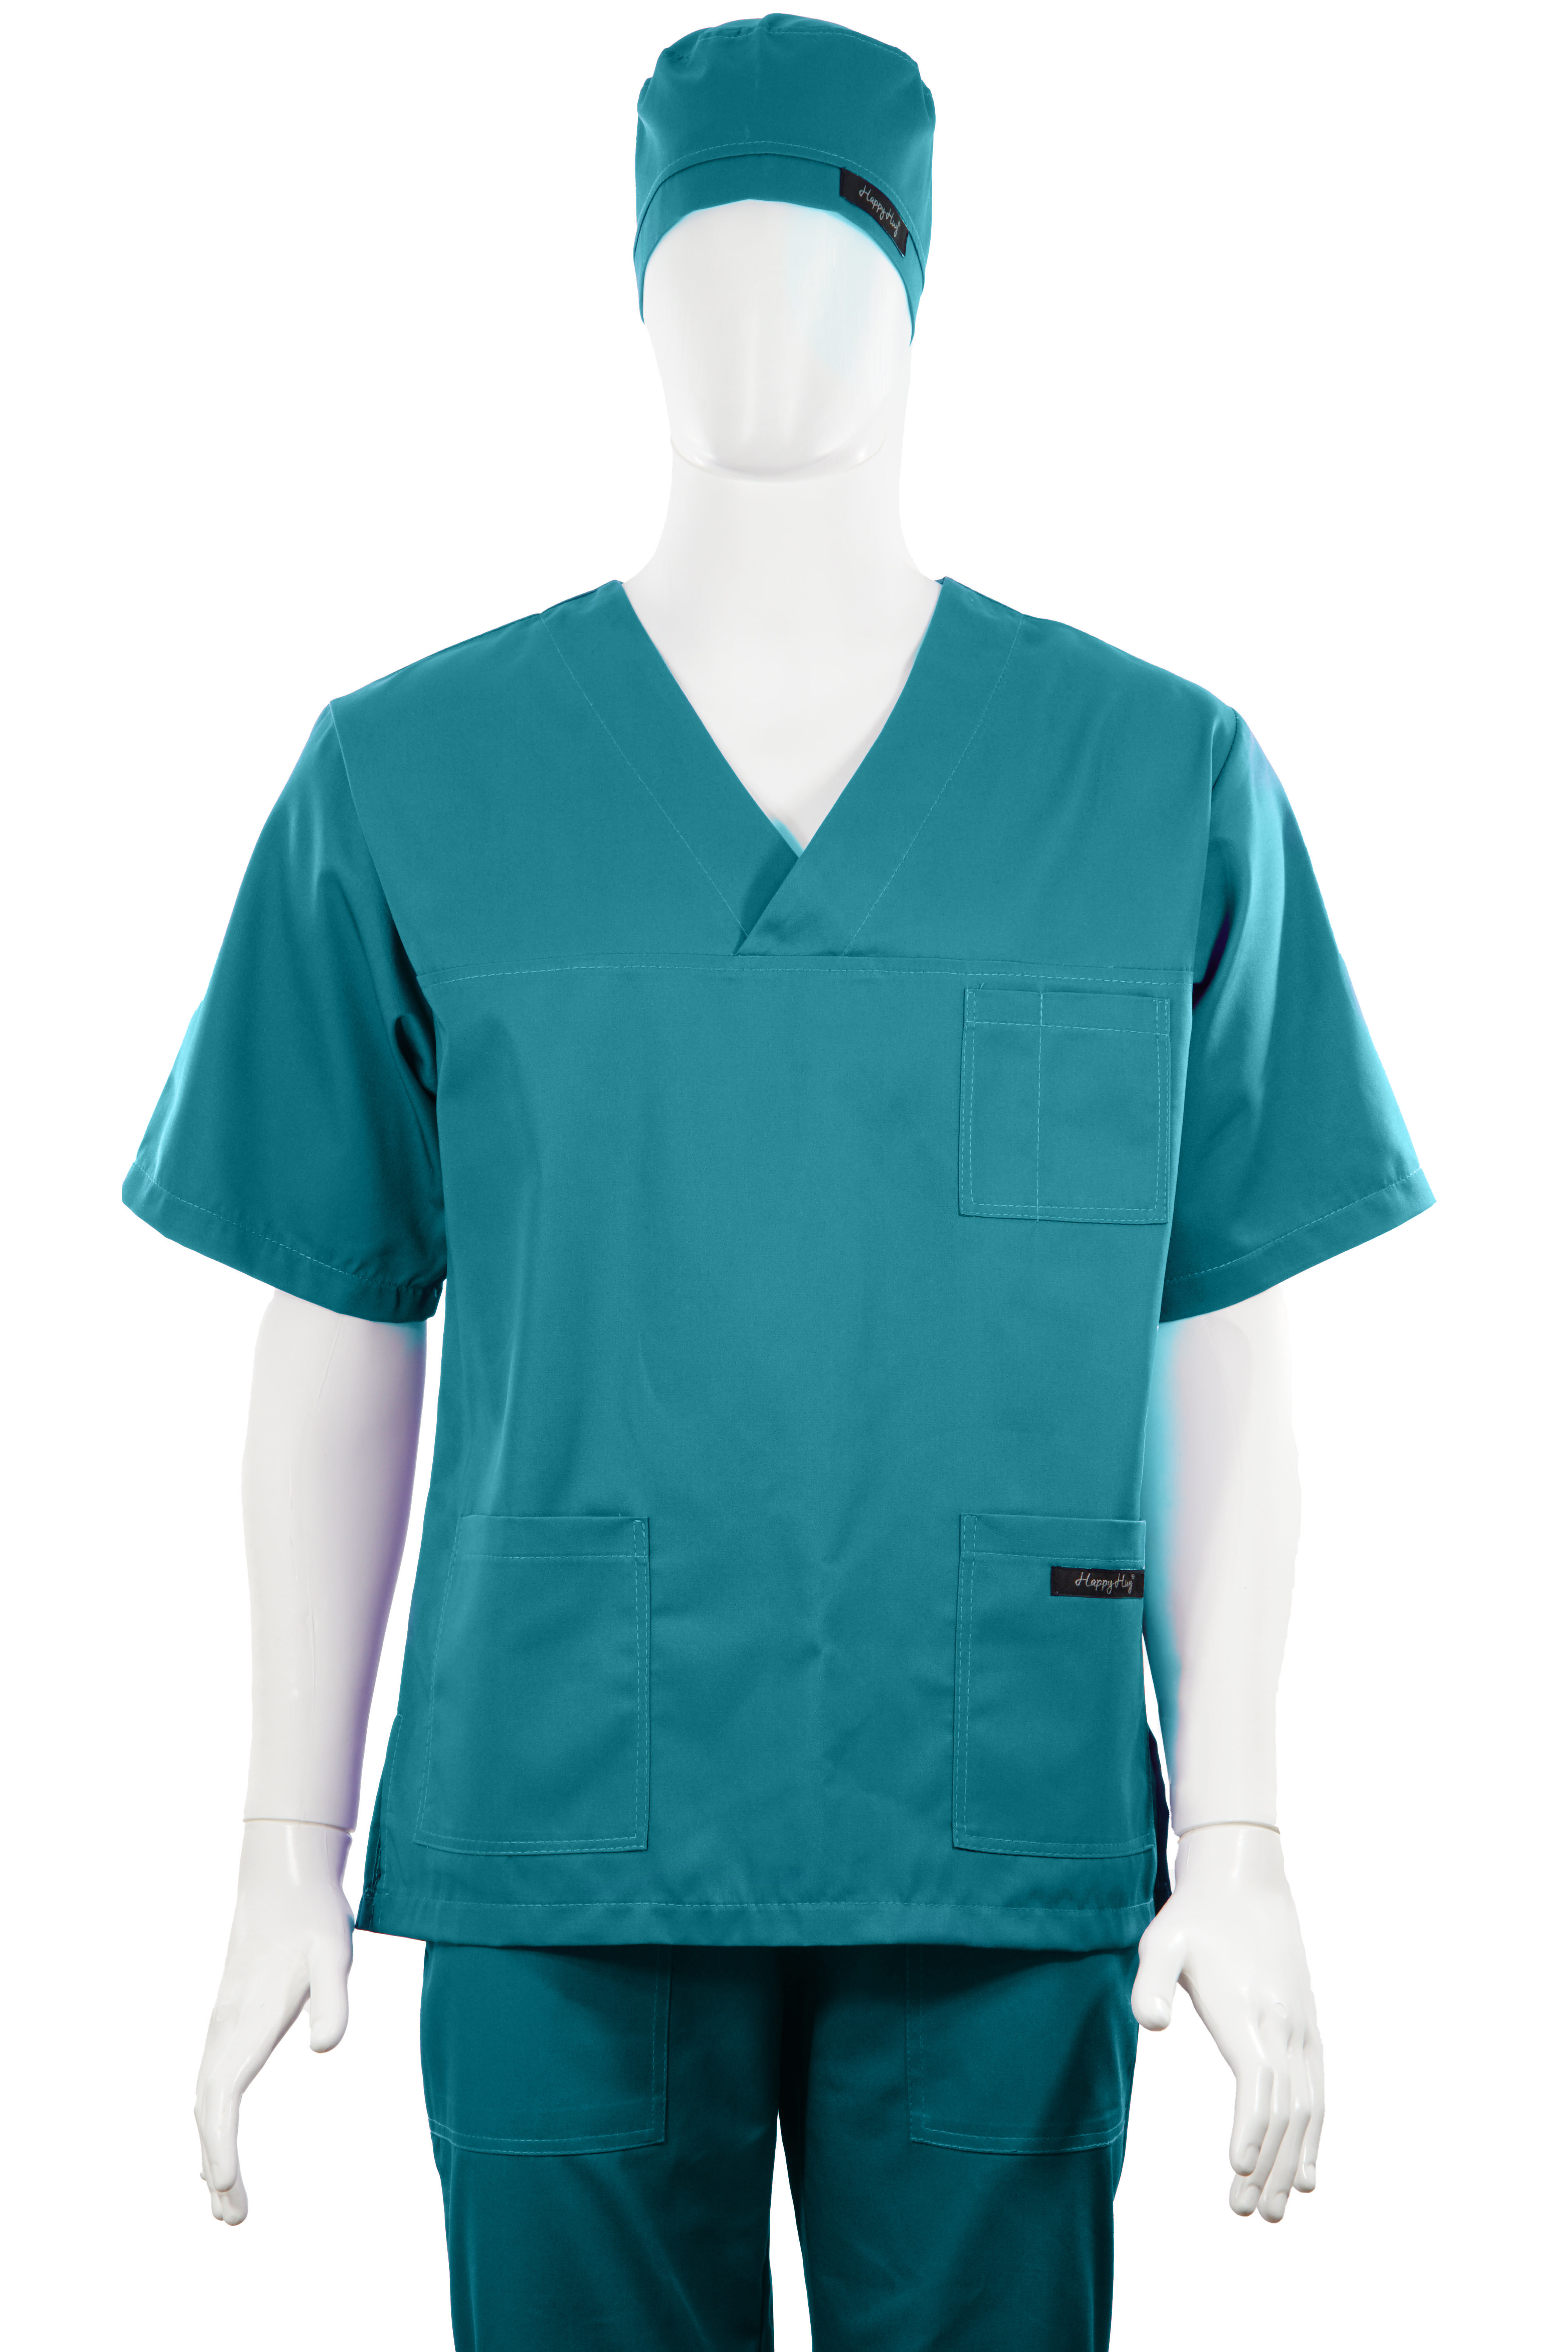 Costum Medical Unisex teal 2XL 2XL 4